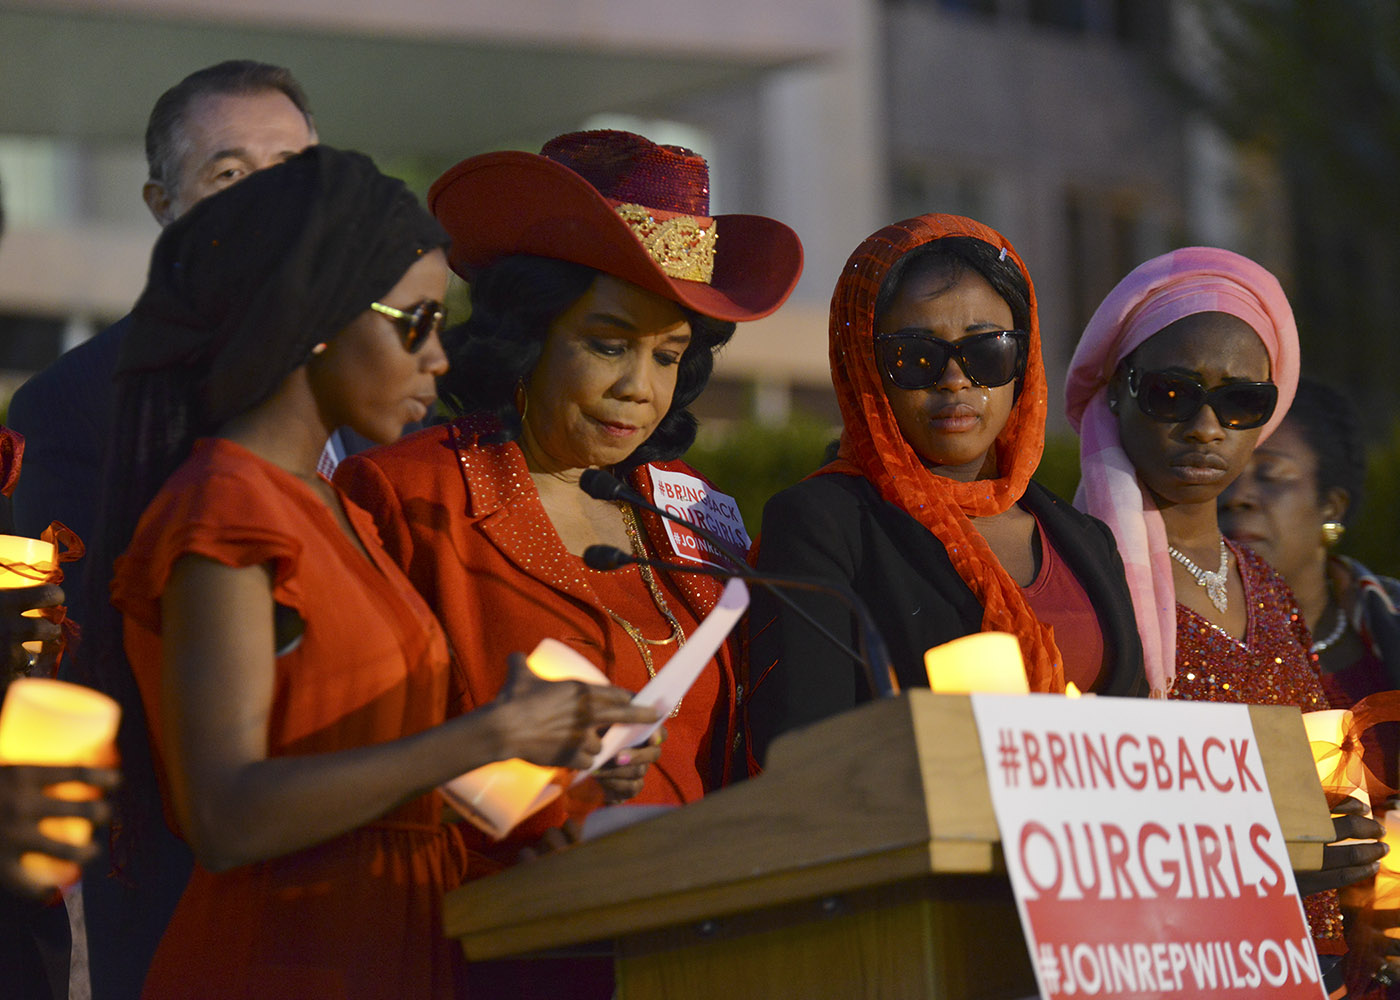 A Chibok school girl that escaped the Boko Haram kidnapping two years ago (left) reads from a list of names of the girls that are still missing as Rep. Frederica Wilson (D-Fla.) looks on during a candlelight vigil at the State Department in Washington, D.C. on April 20, 2016. (Freddie Allen/AMG/NNPA News Wire)